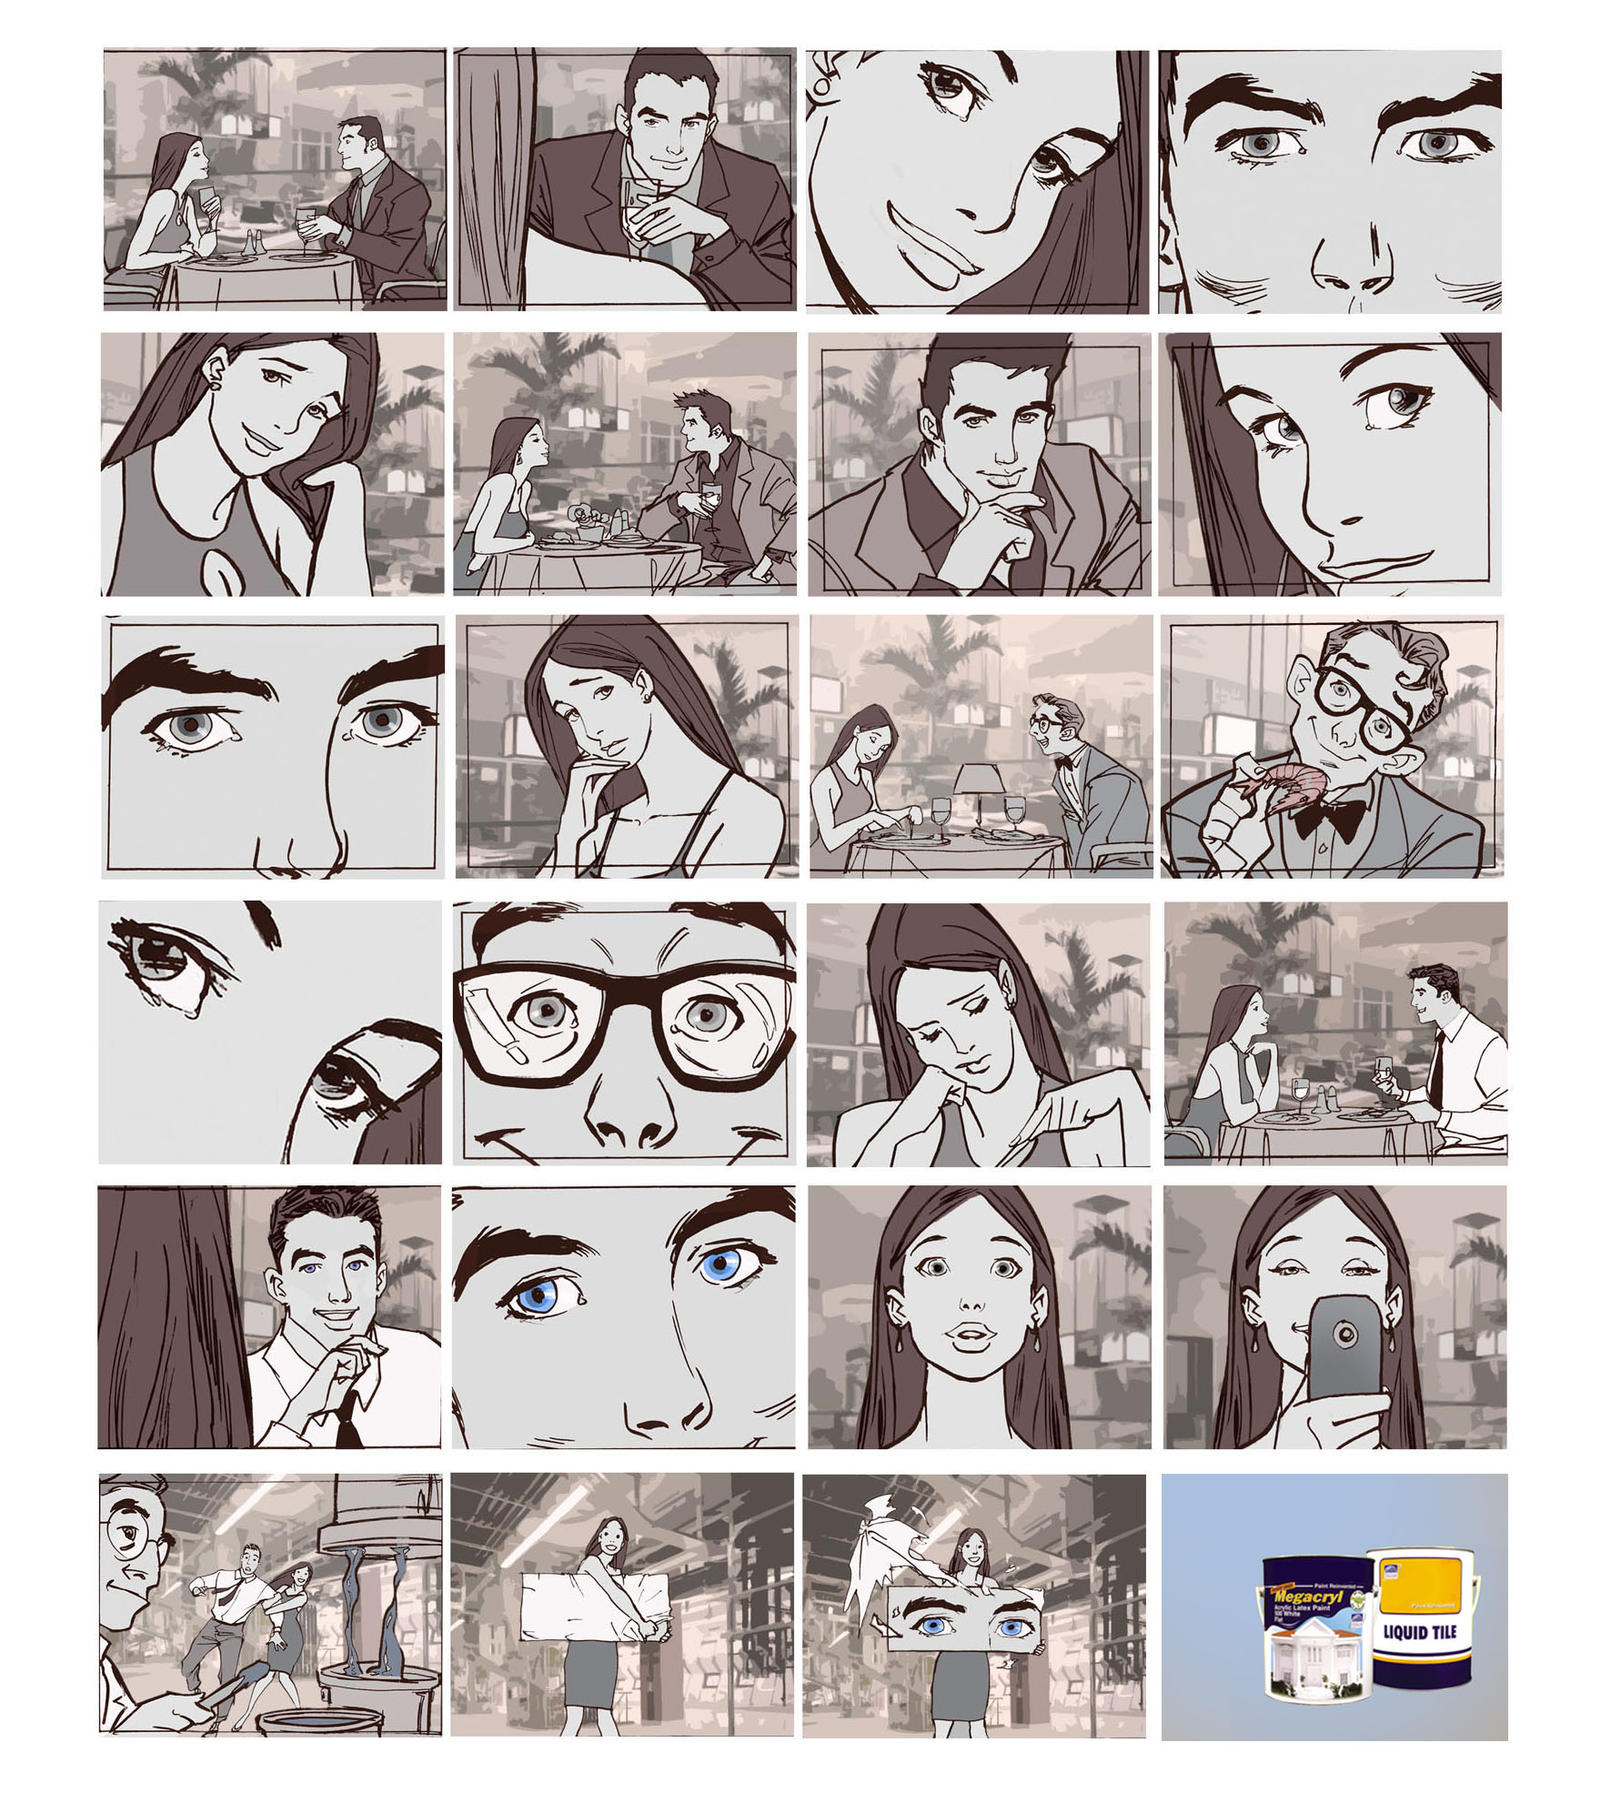 Tv Commercial Storyboard2 By Makulayangbuhay On DeviantArt